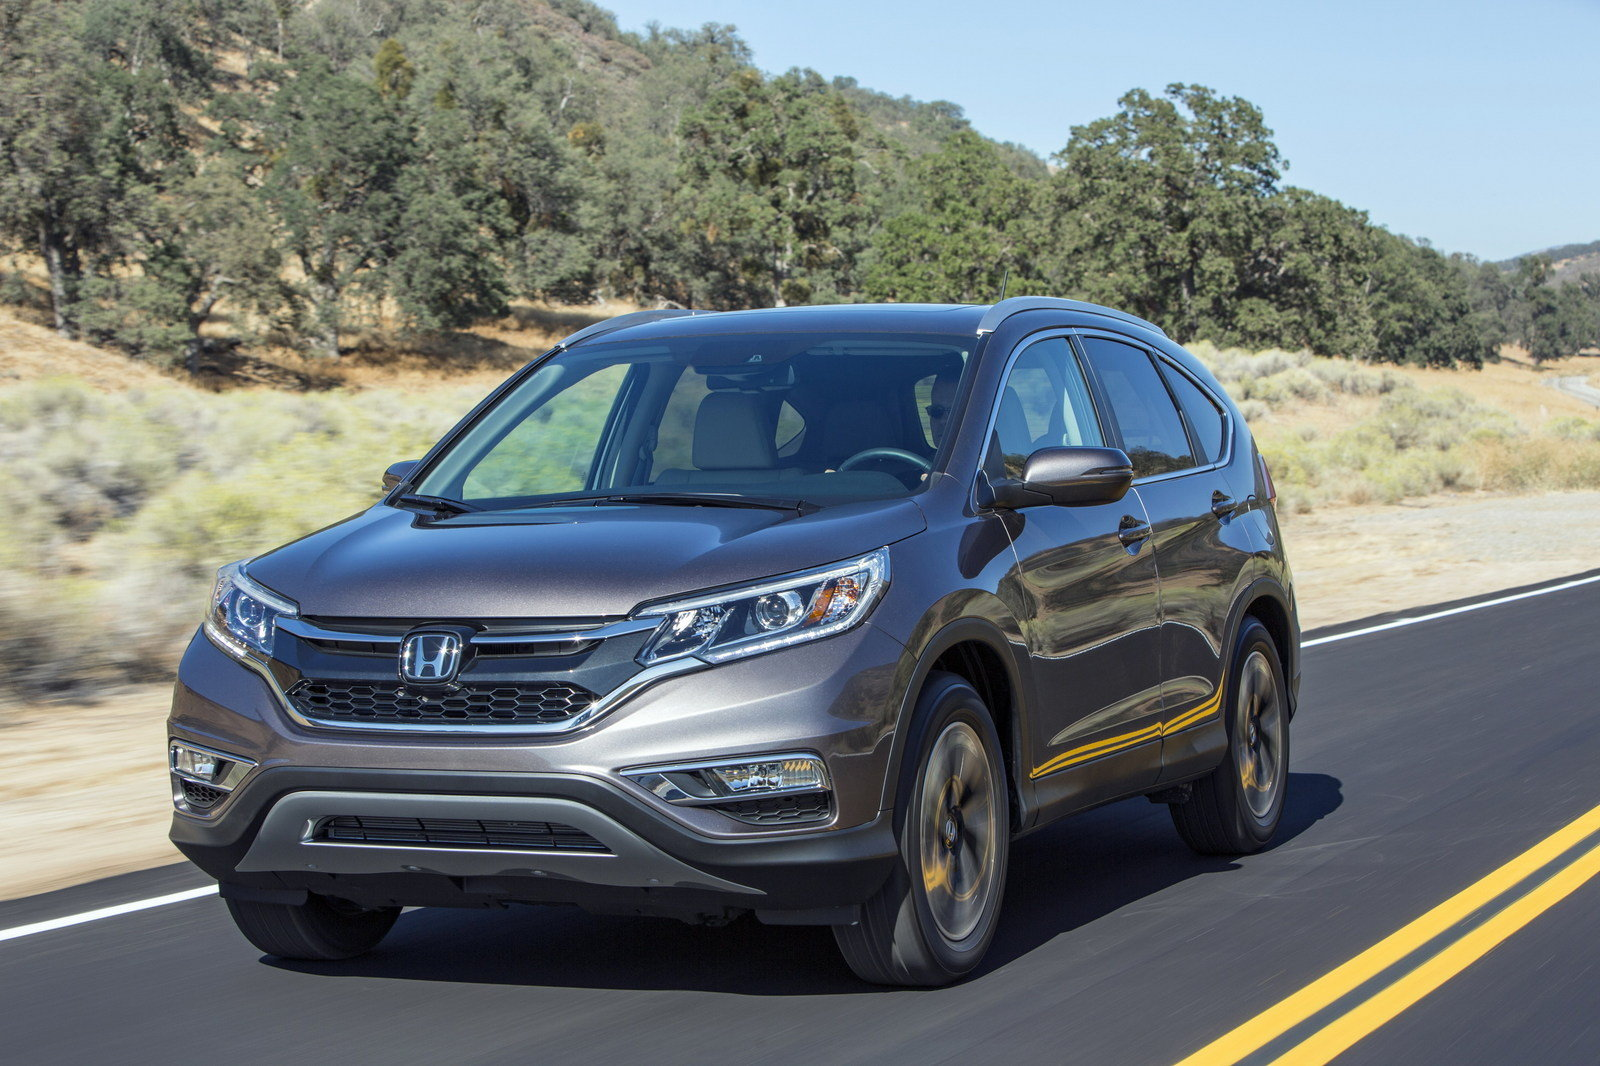 2016 crv pictures autos post for Honda crv 2016 price